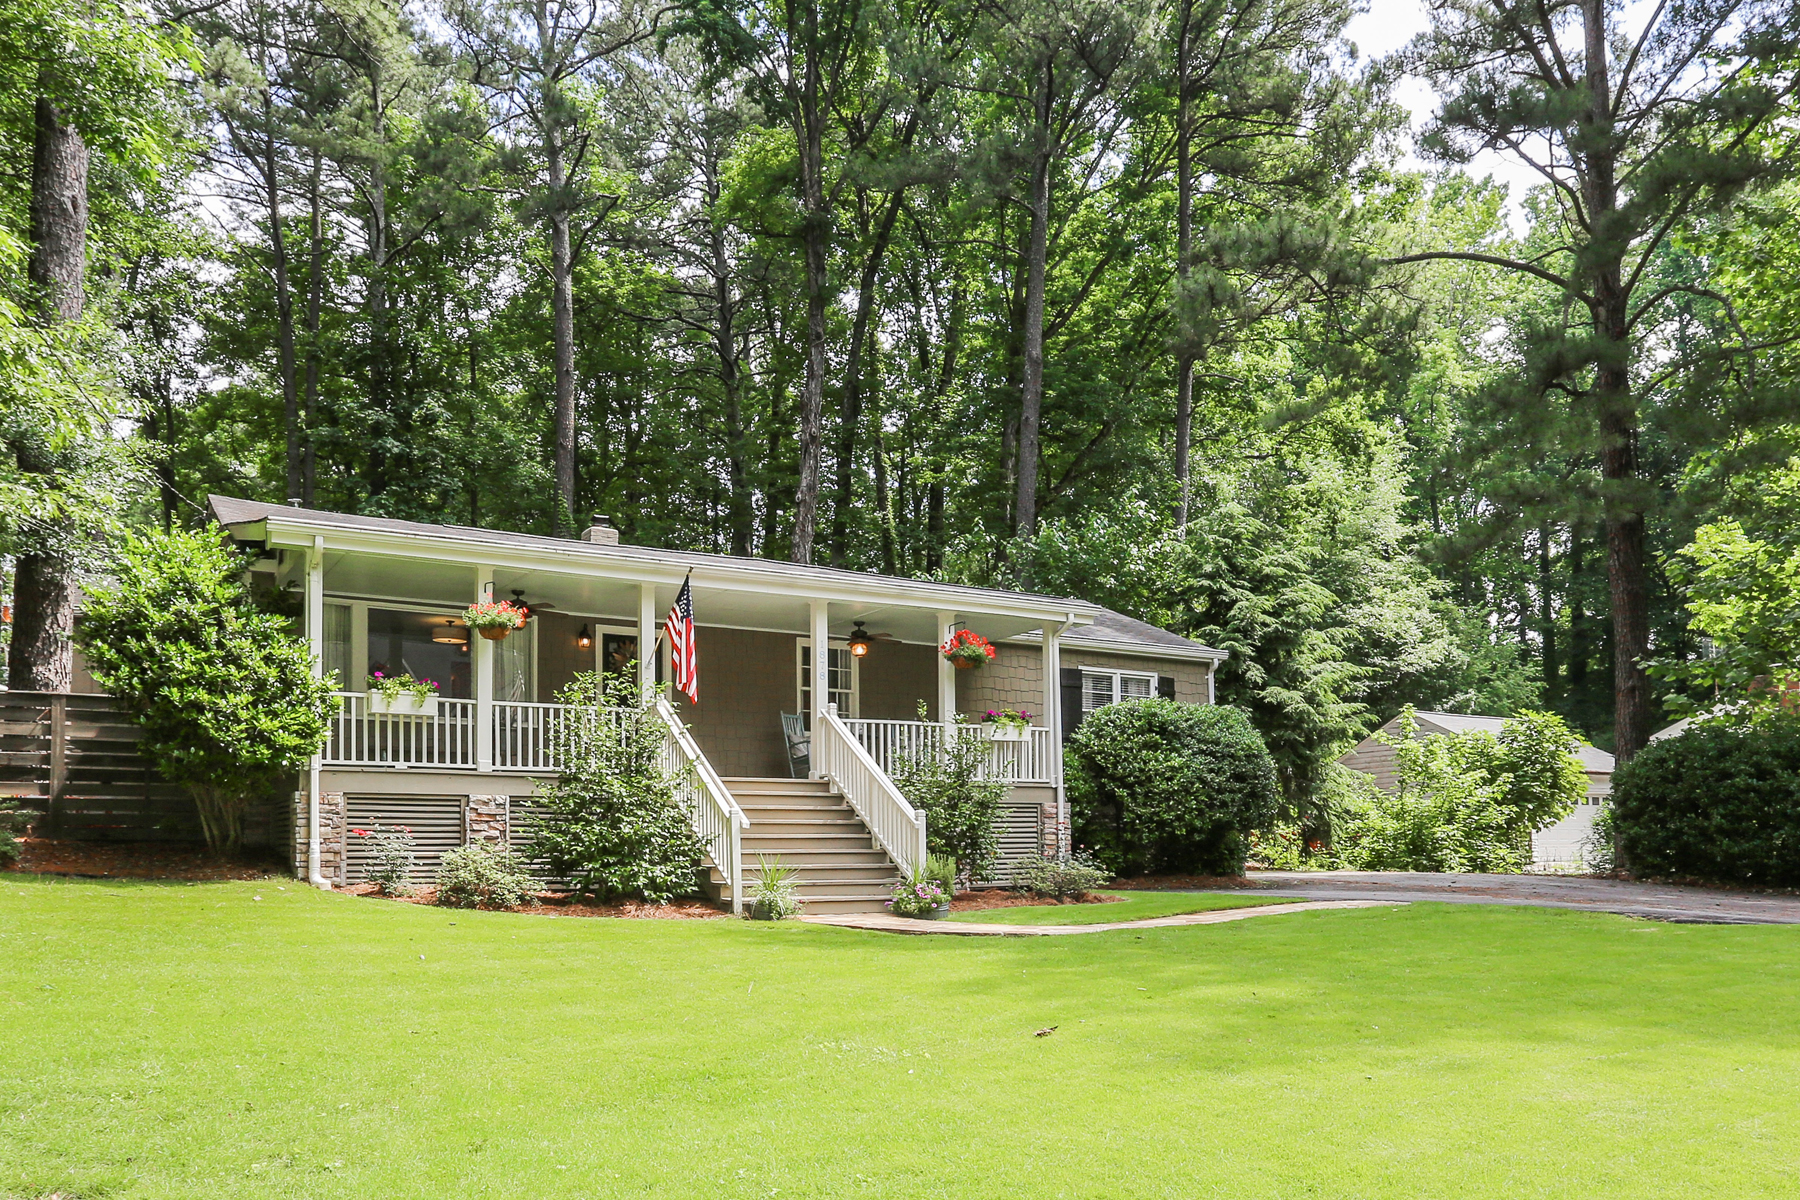 Single Family Home for Sale at Charming Ashford Park Bungalow 1878 Hickory Rd Chamblee, Georgia 30341 United States